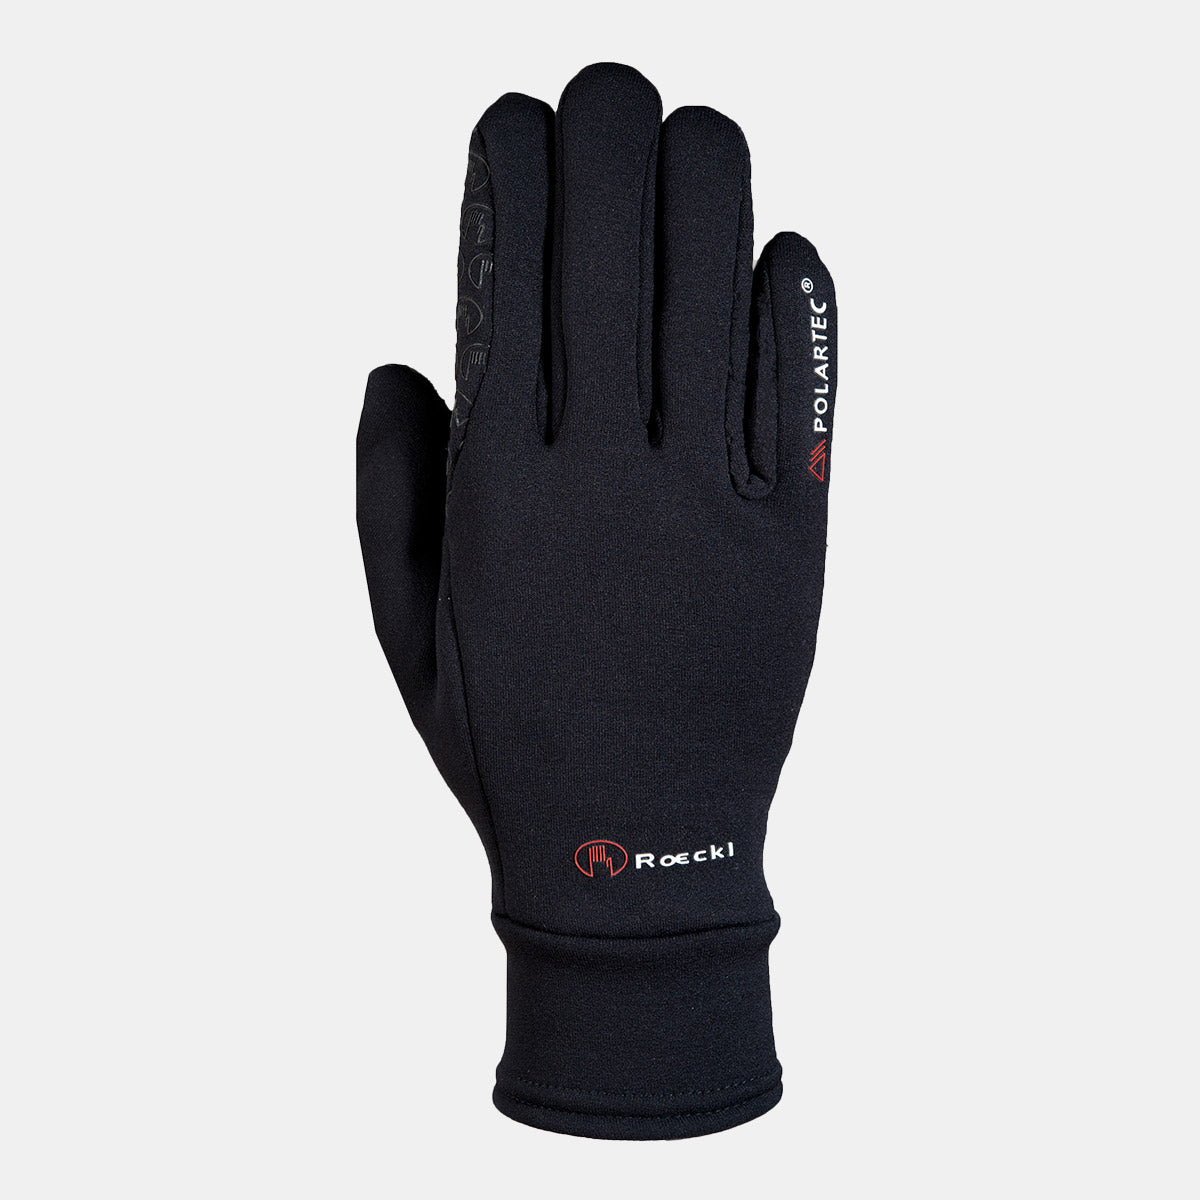 Roeckl Warwick Winter Glove in Black